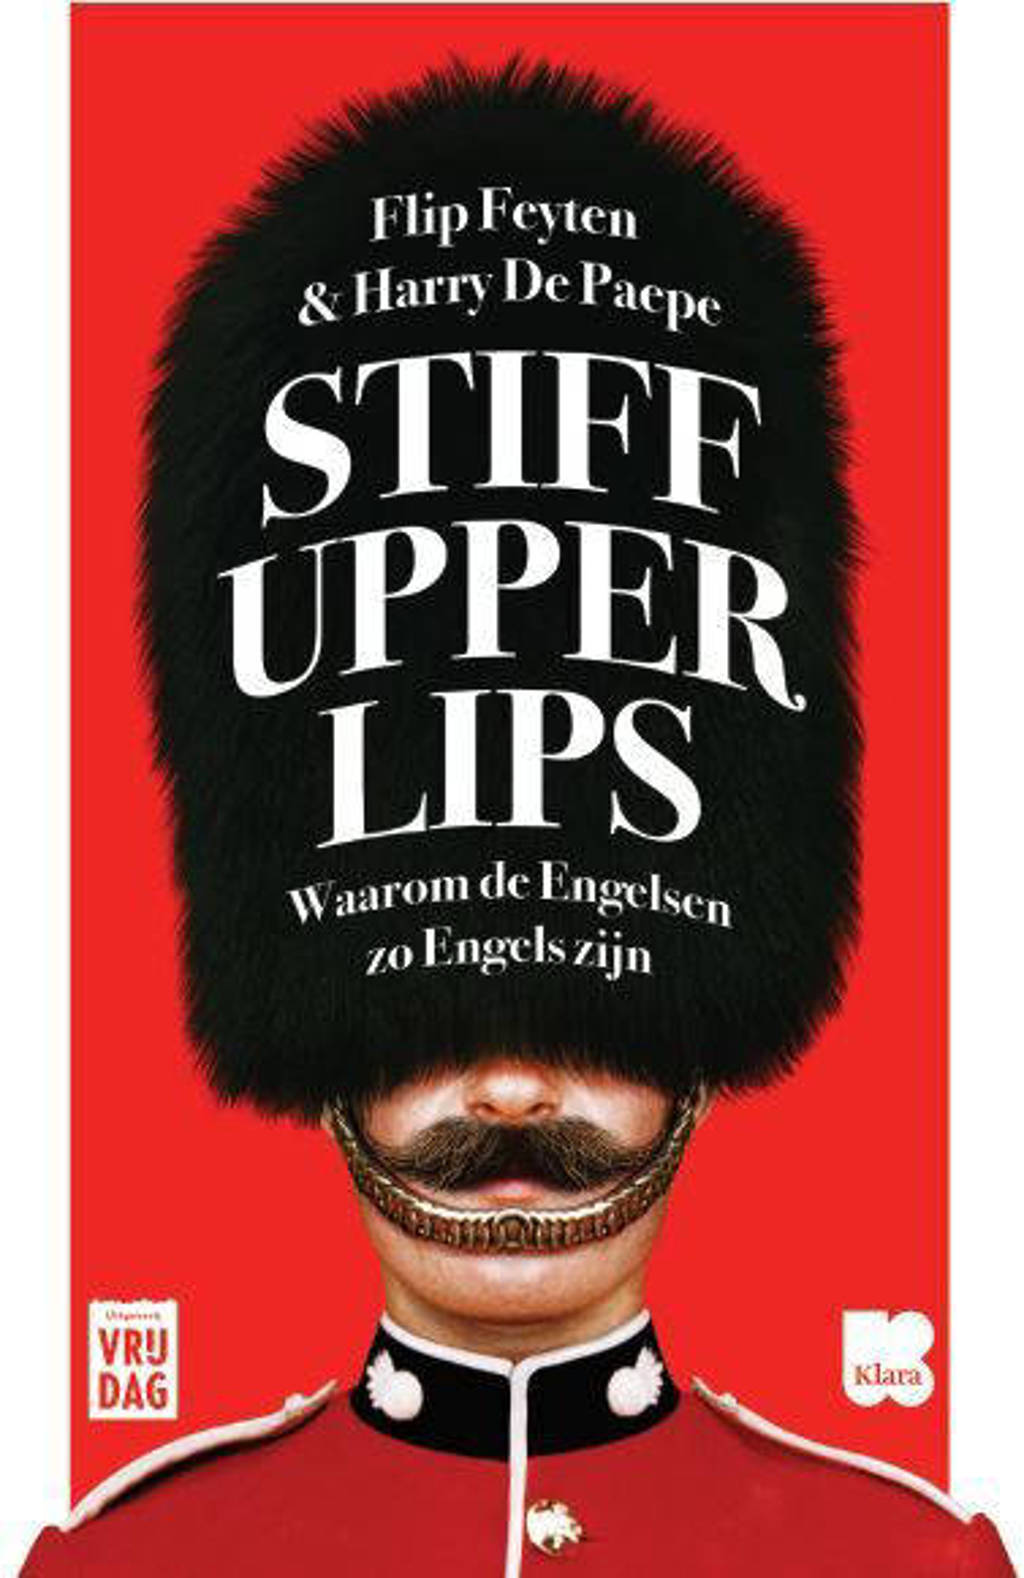 Stiff upper lips - Flip Feyten en Harry De Paepe